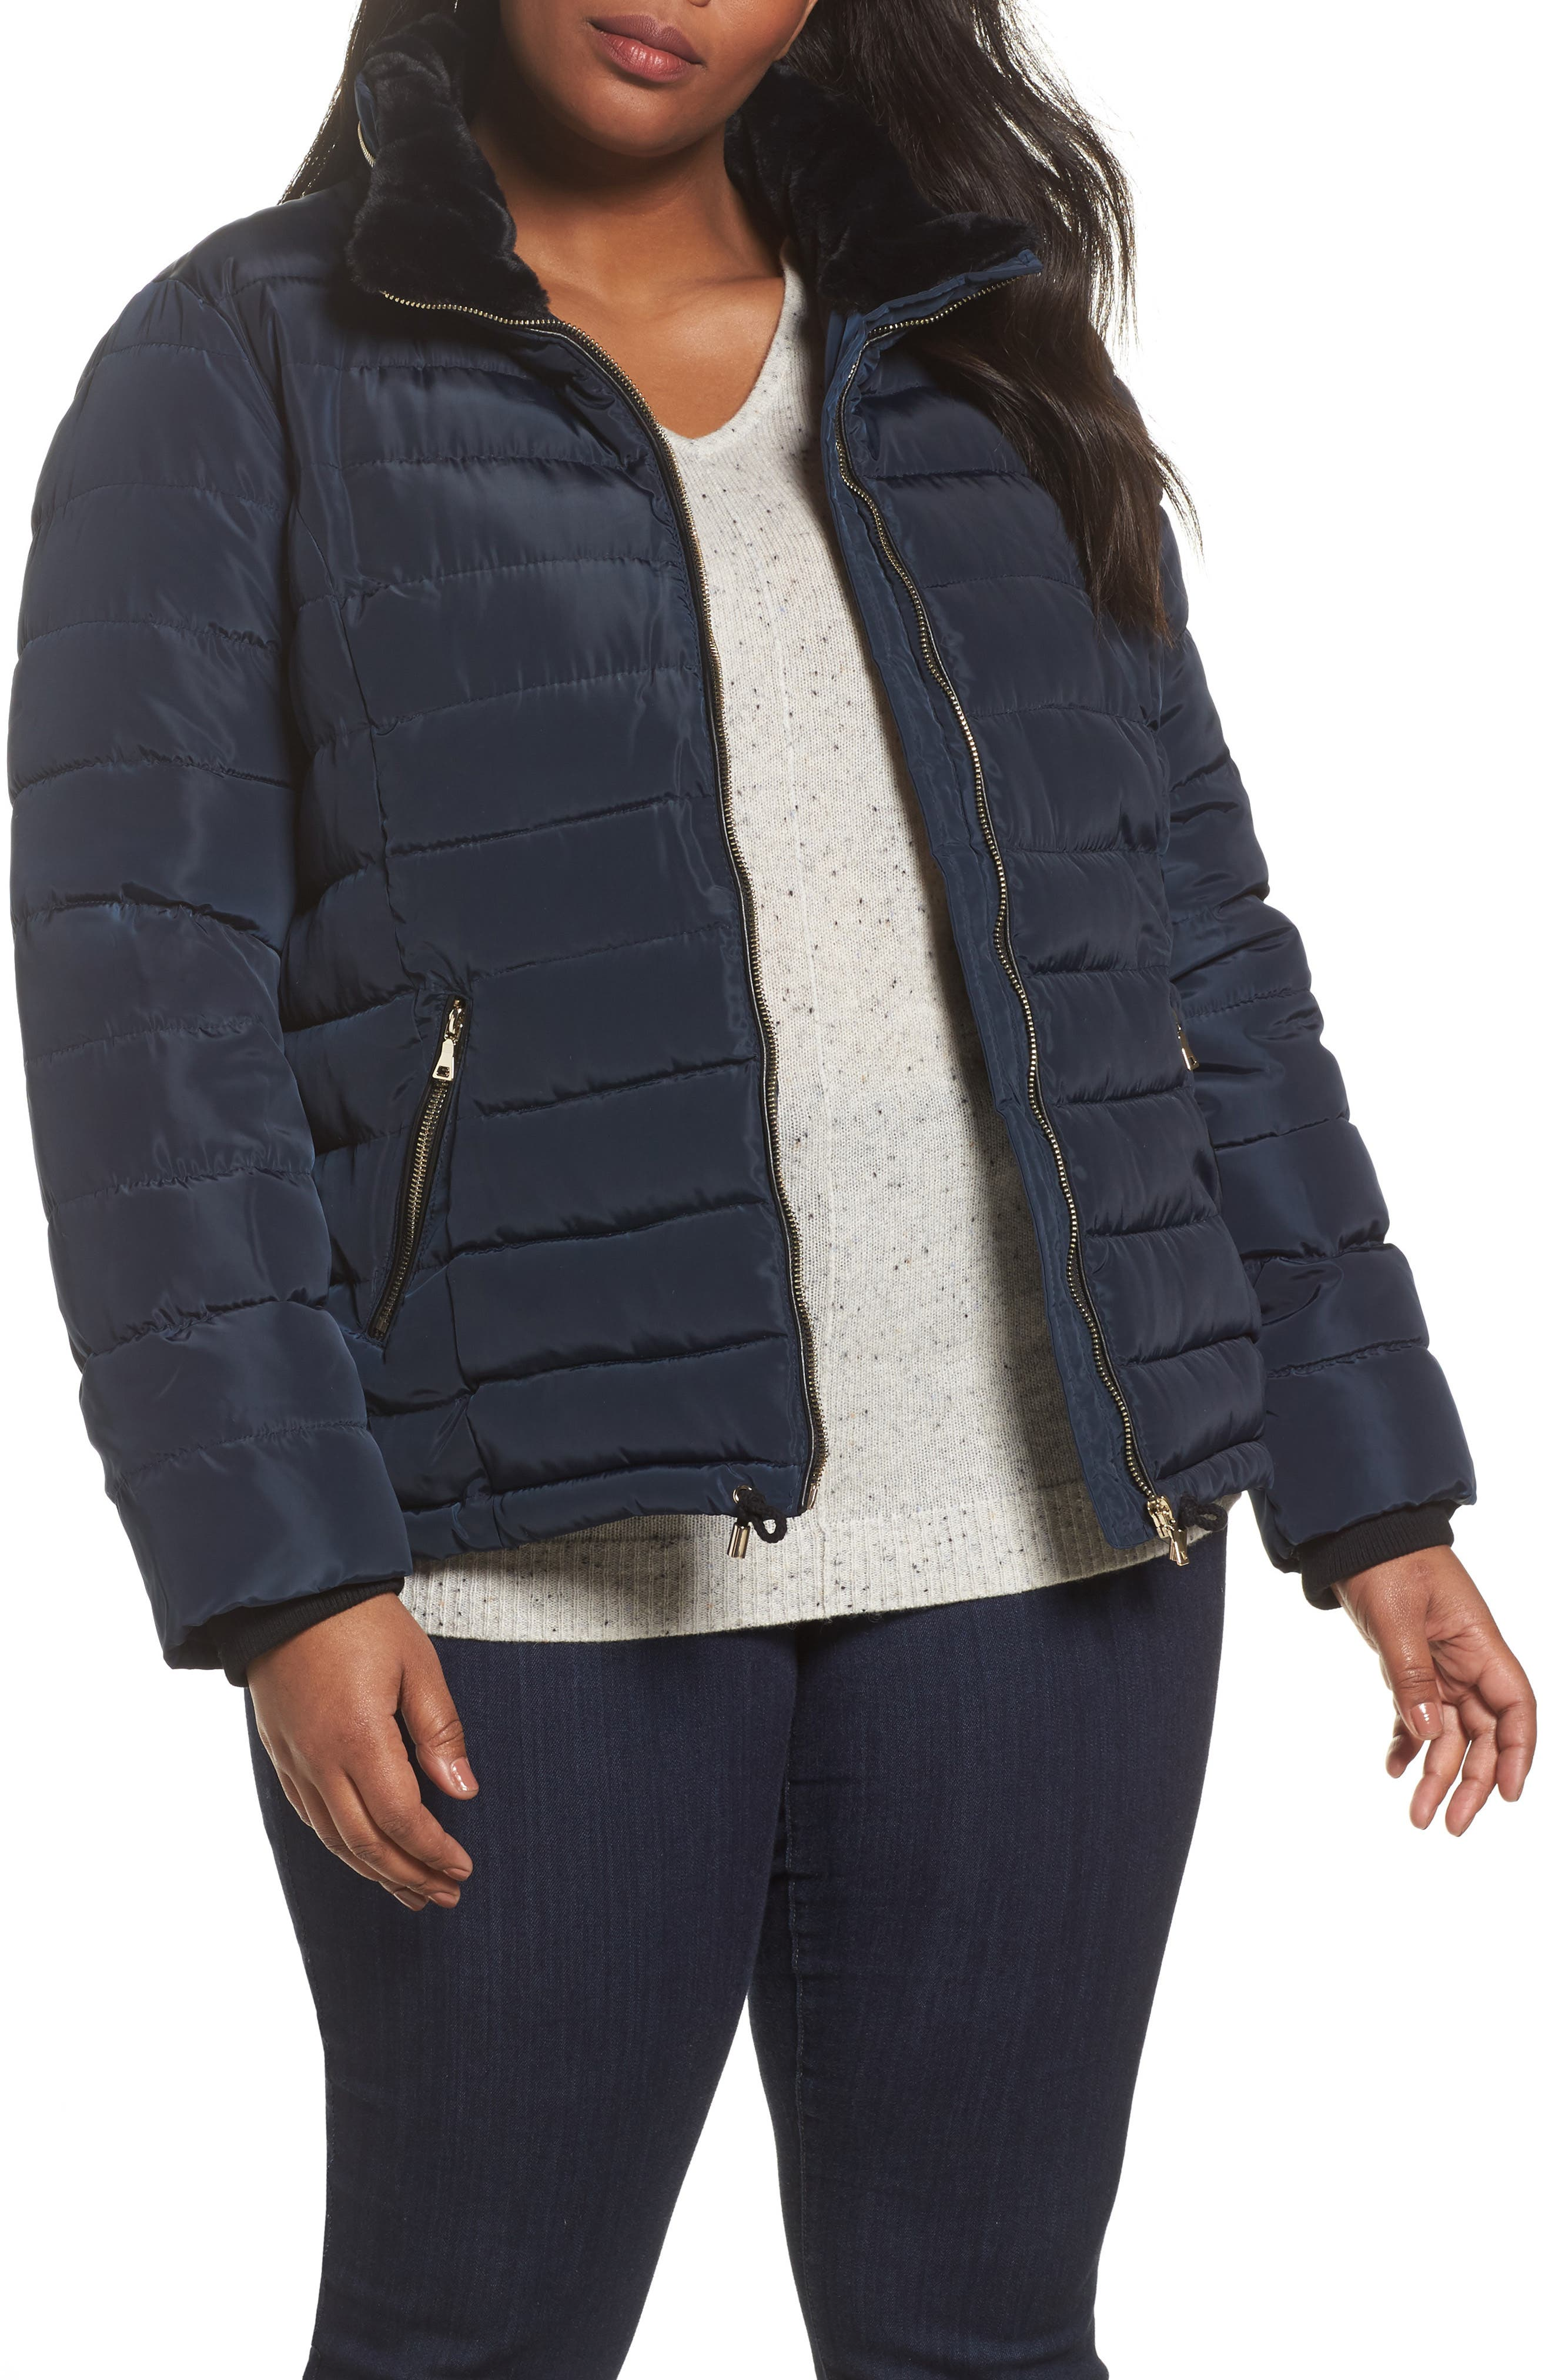 Main Image - Dorothy Perkins Faux Fur Trim Hooded Puffer Jacket (Plus Size)